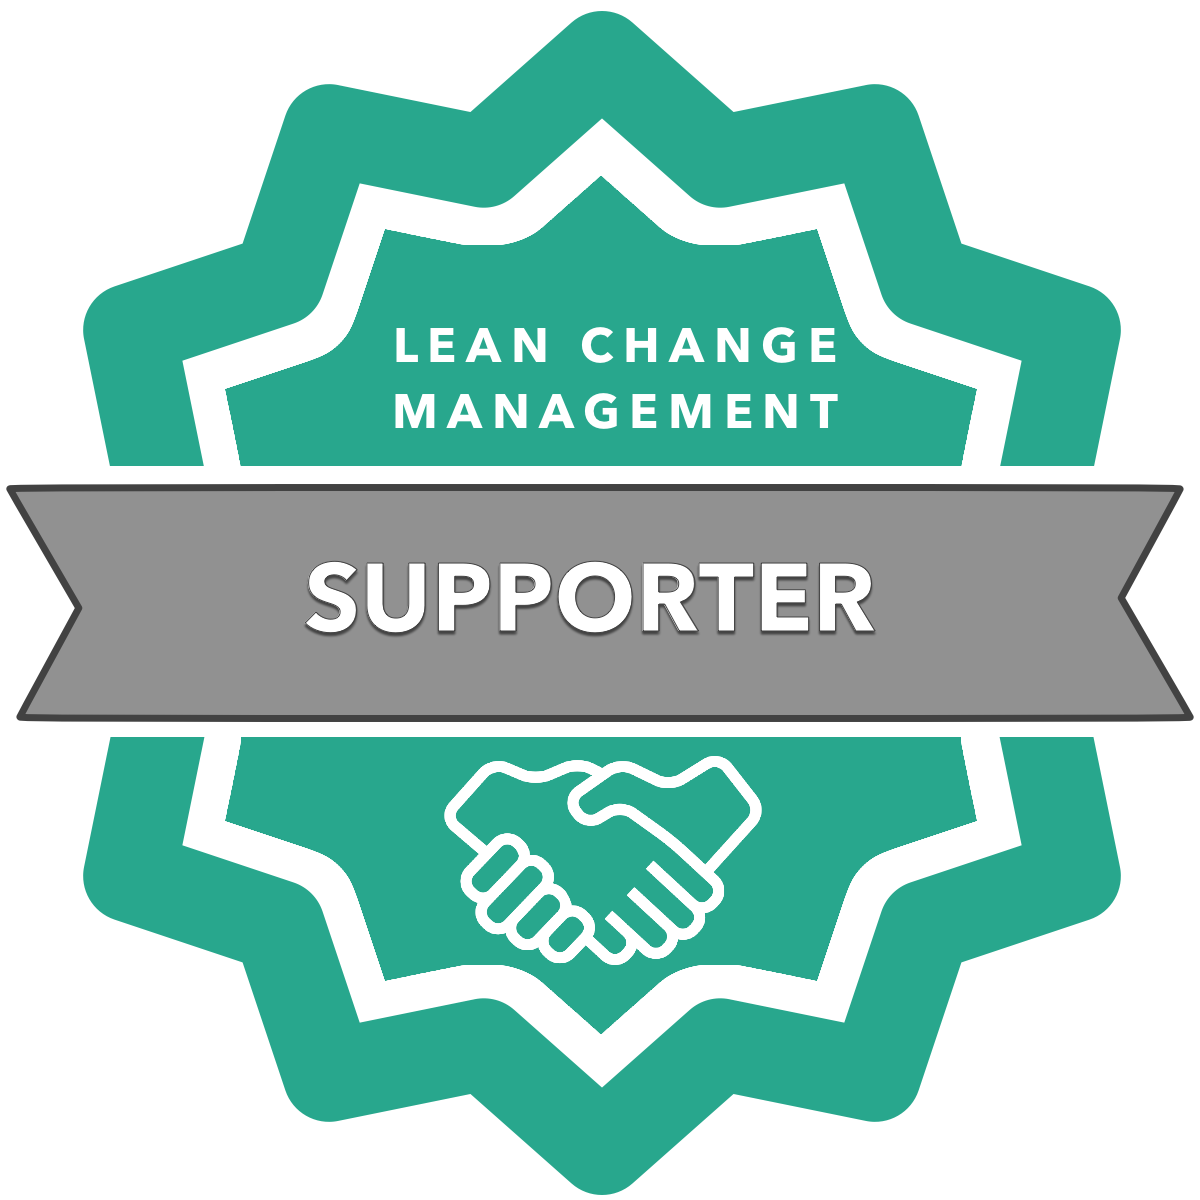 Lean Change Management Supporter